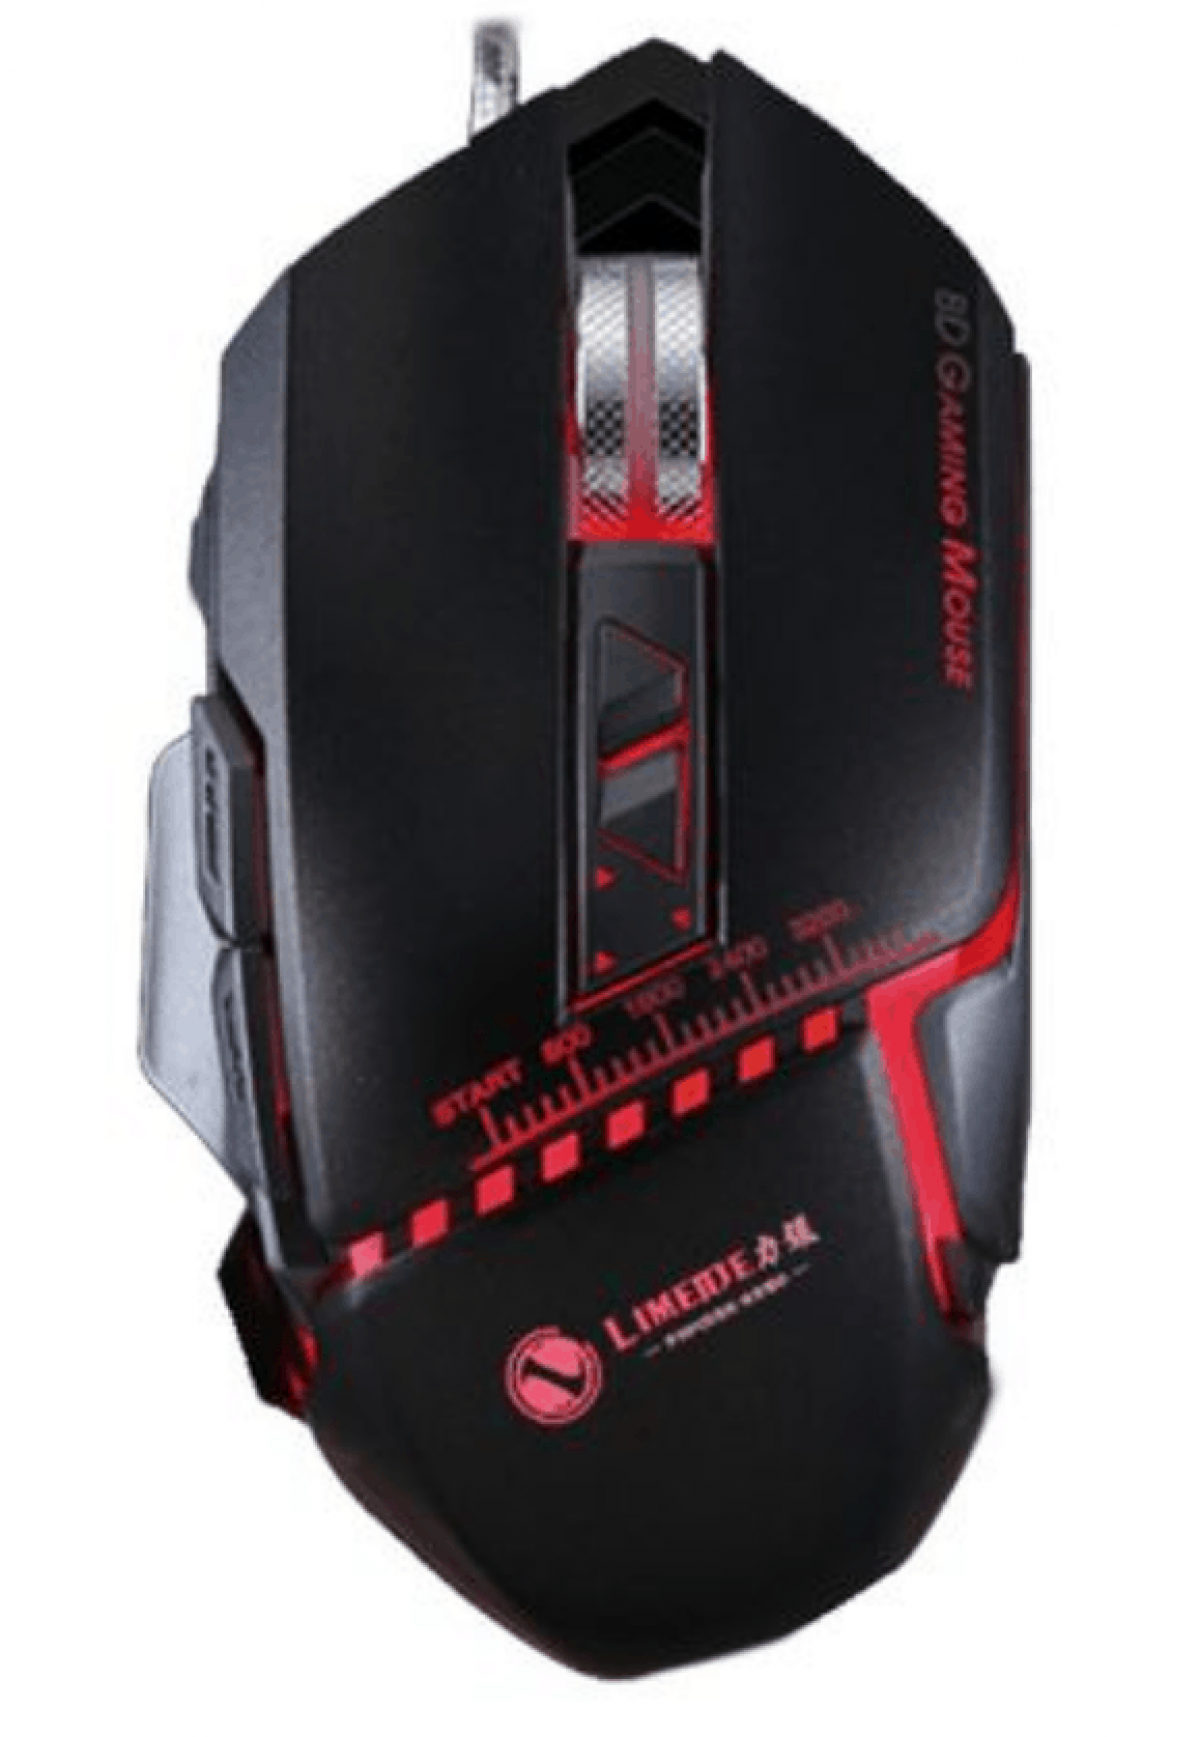 Zornwee Equipment Master Professional Gaming Mouse